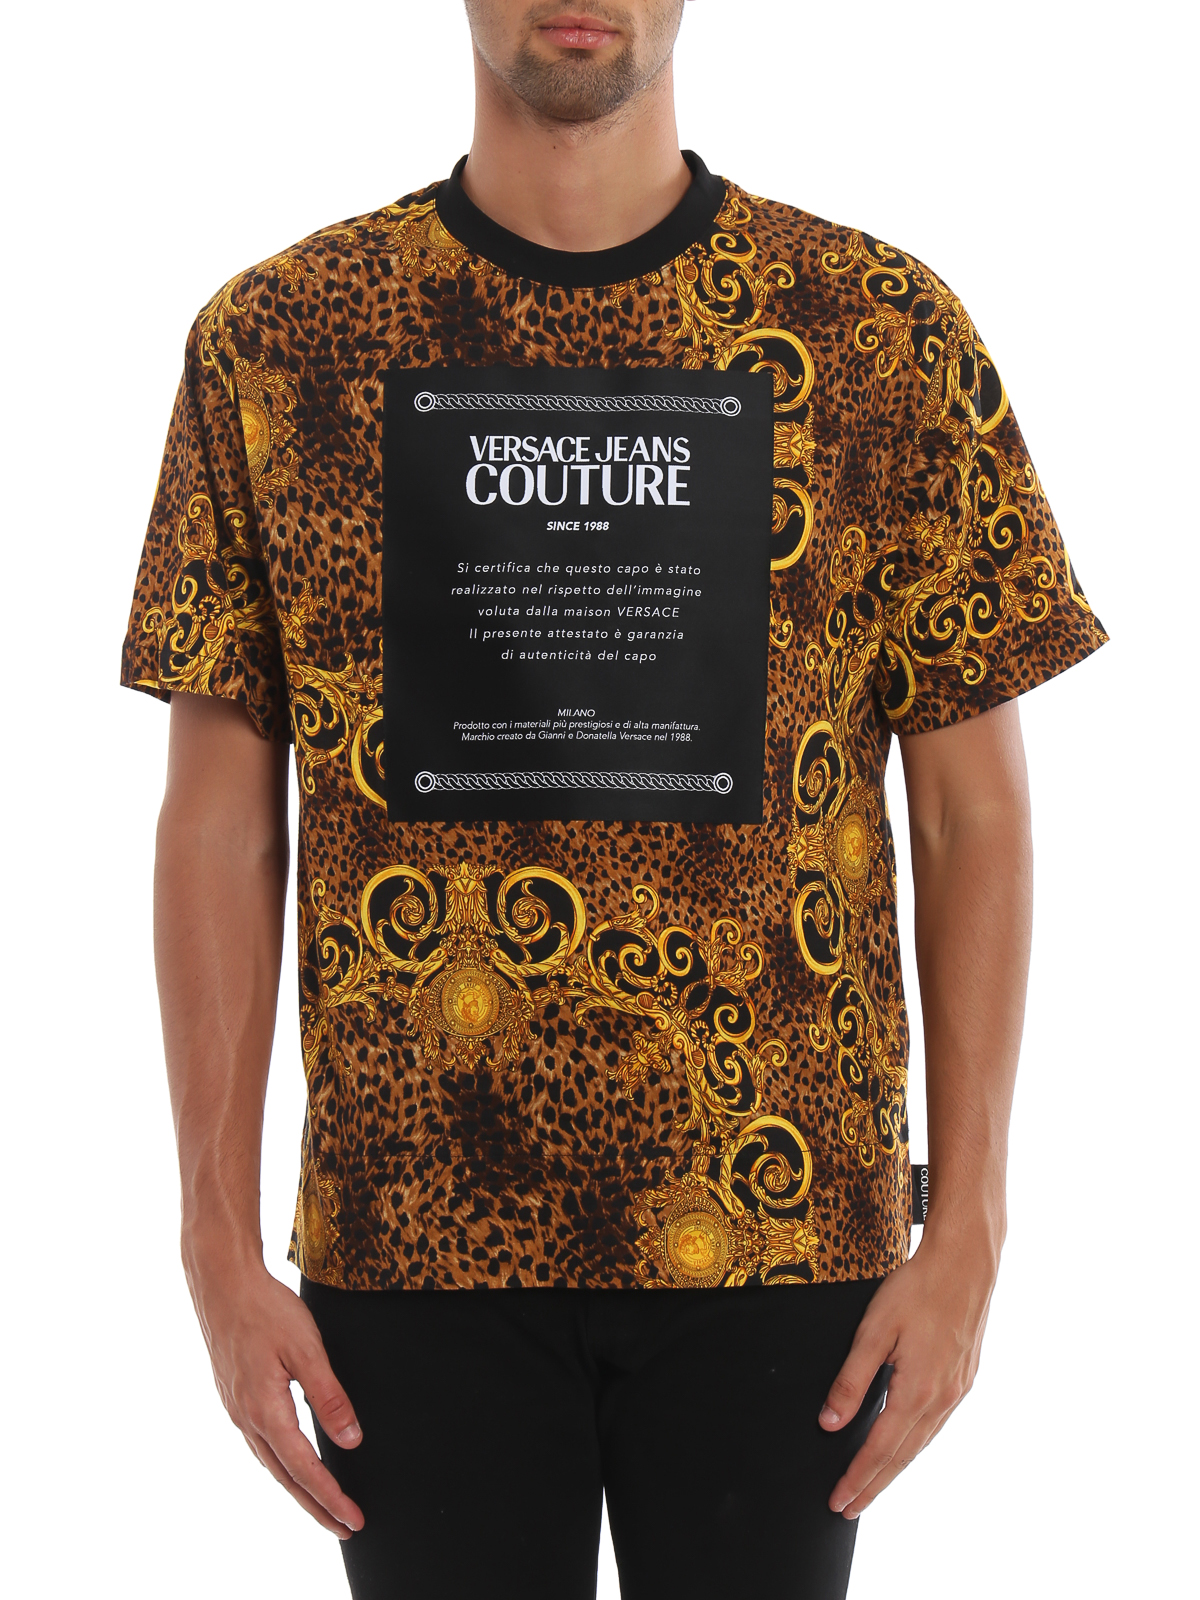 Versace Jeans Couture T shirt con stampa Barocco